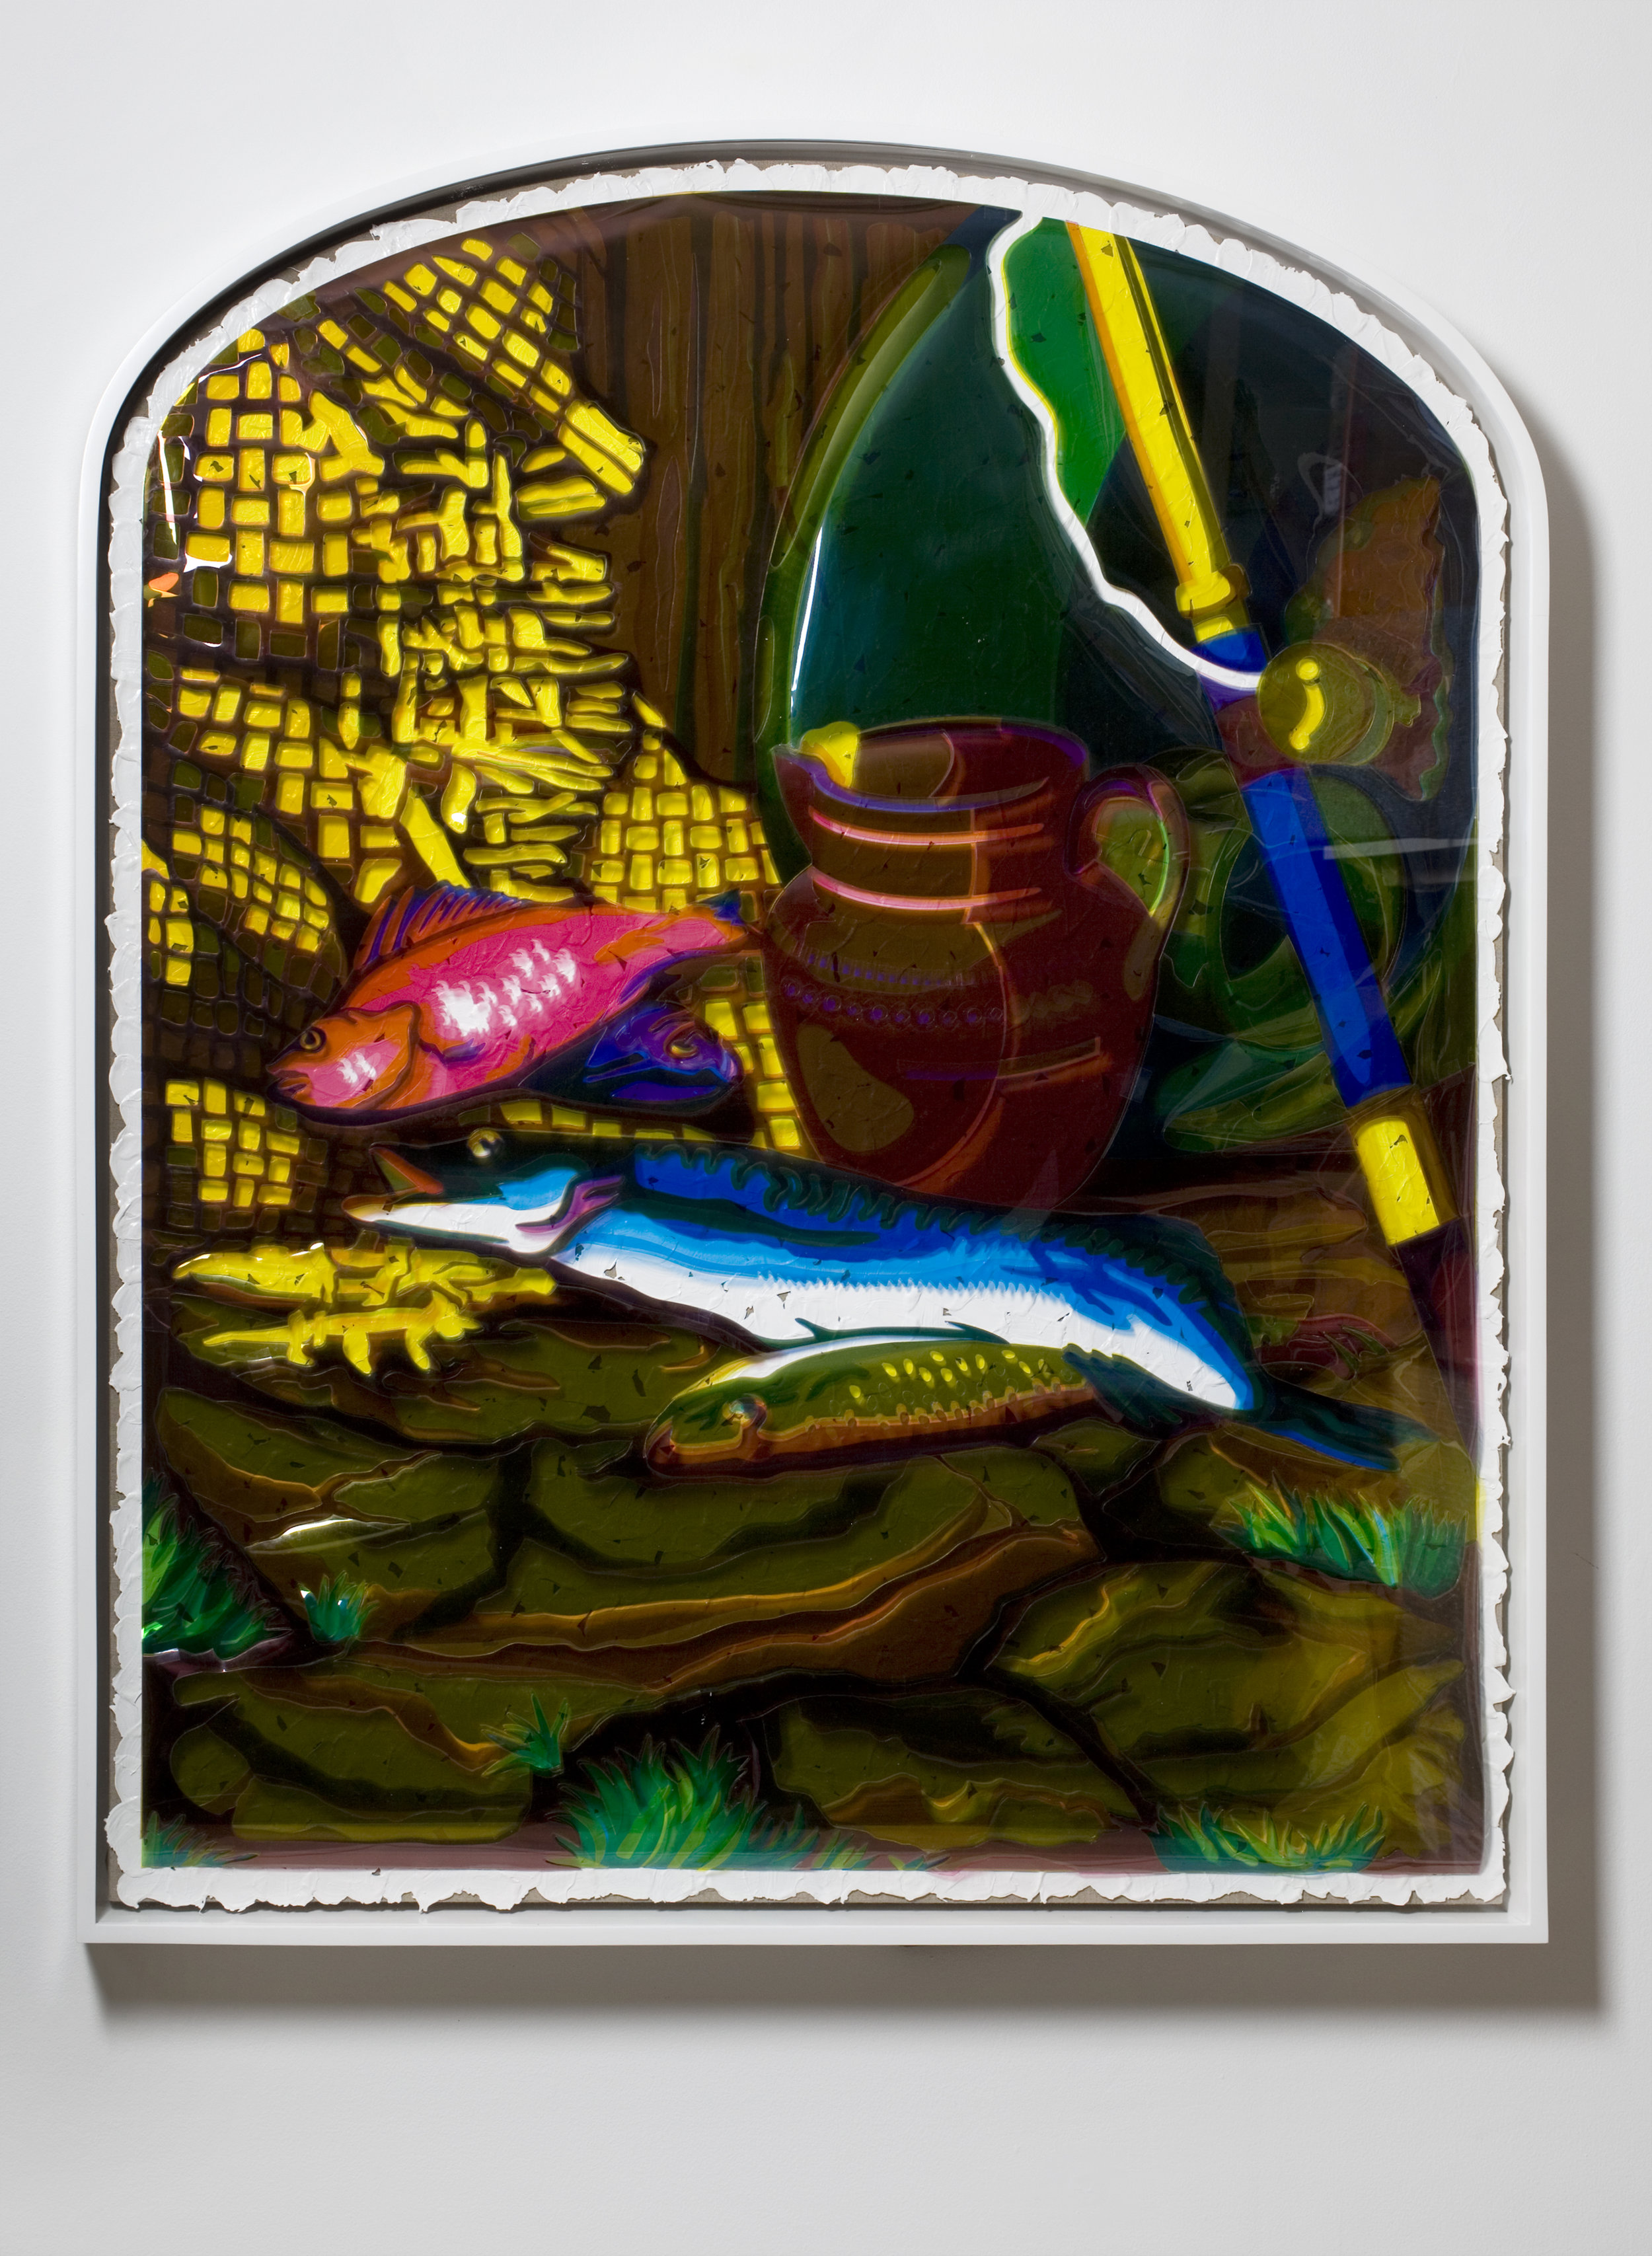 """Overlay Series: Early Photograph (""""A Day's Sport (Group of Fish)"""" by T.R. Williams, c. 1851-1855); Color Acetate Red, Yellow and Blue; Brushstrokes; and Linen Canvas on Stretcher Bars., 2008 red, yellow and blue film gels and acrylic on linen canvas 145 x 120 cm - 57 1/8 x 47 1/4 inches"""